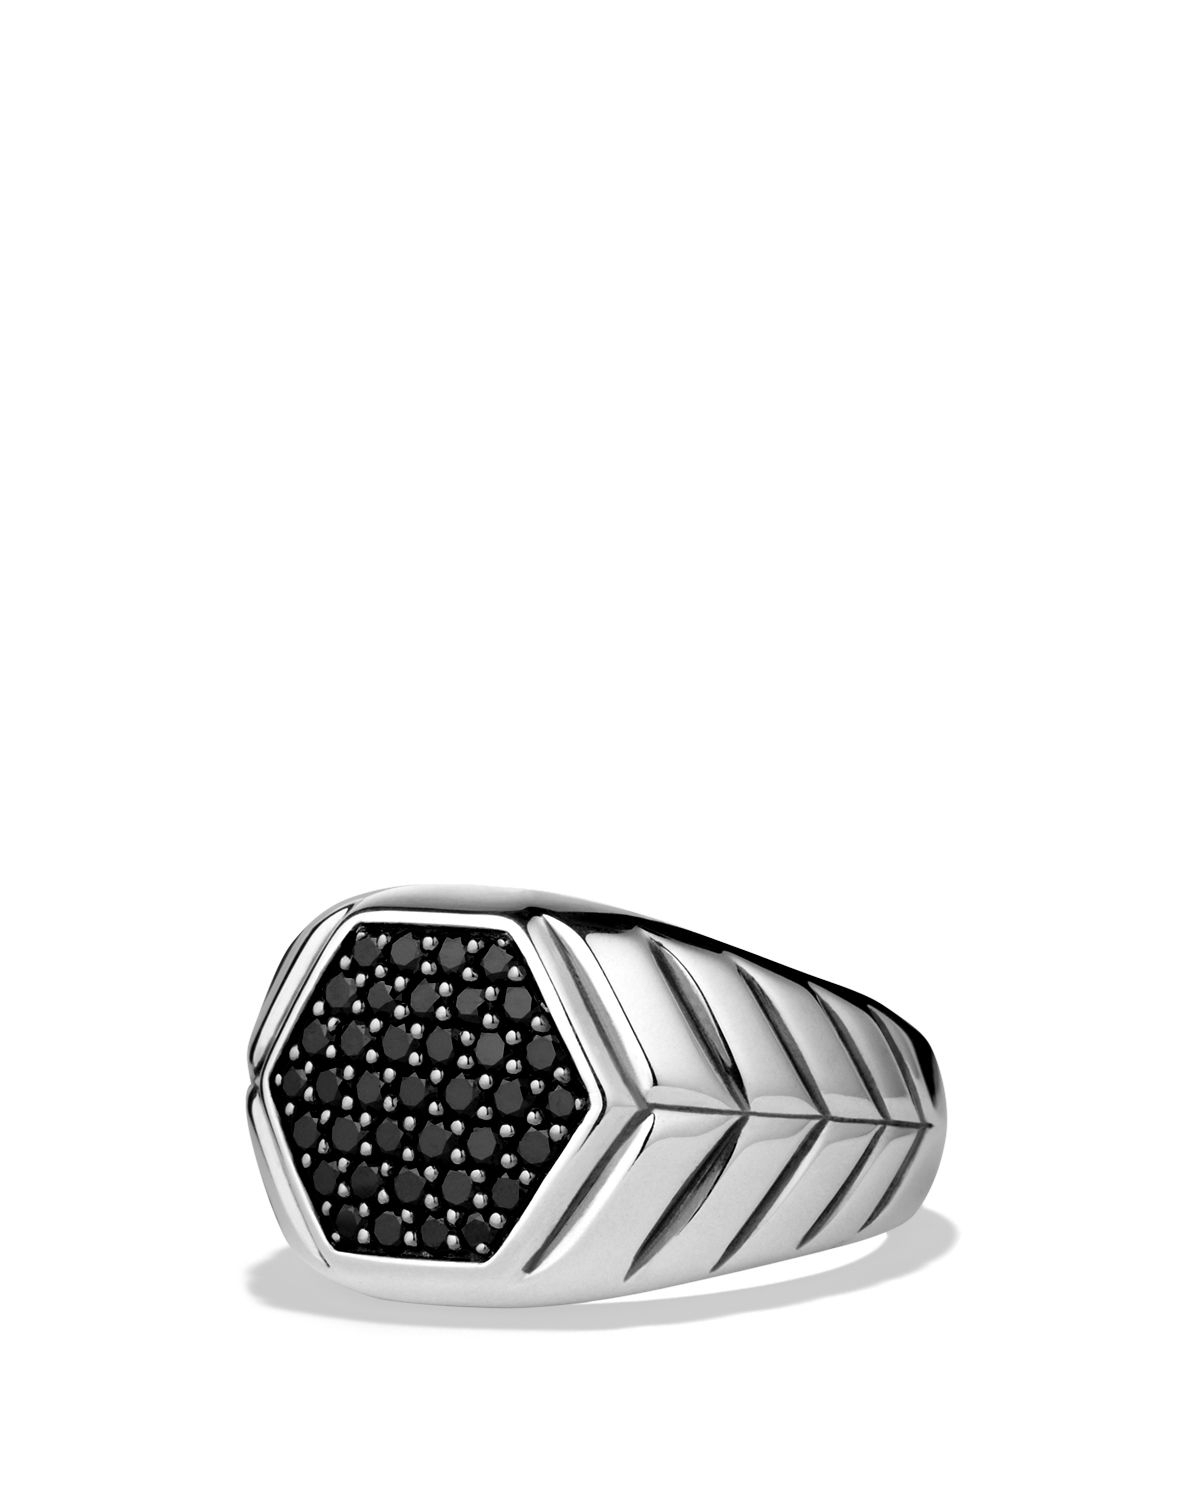 Lyst – David Yurman Modern Chevron Signet Ring With Black Diamonds With Regard To Most Recent Chevron Signet Rings (Gallery 2 of 15)